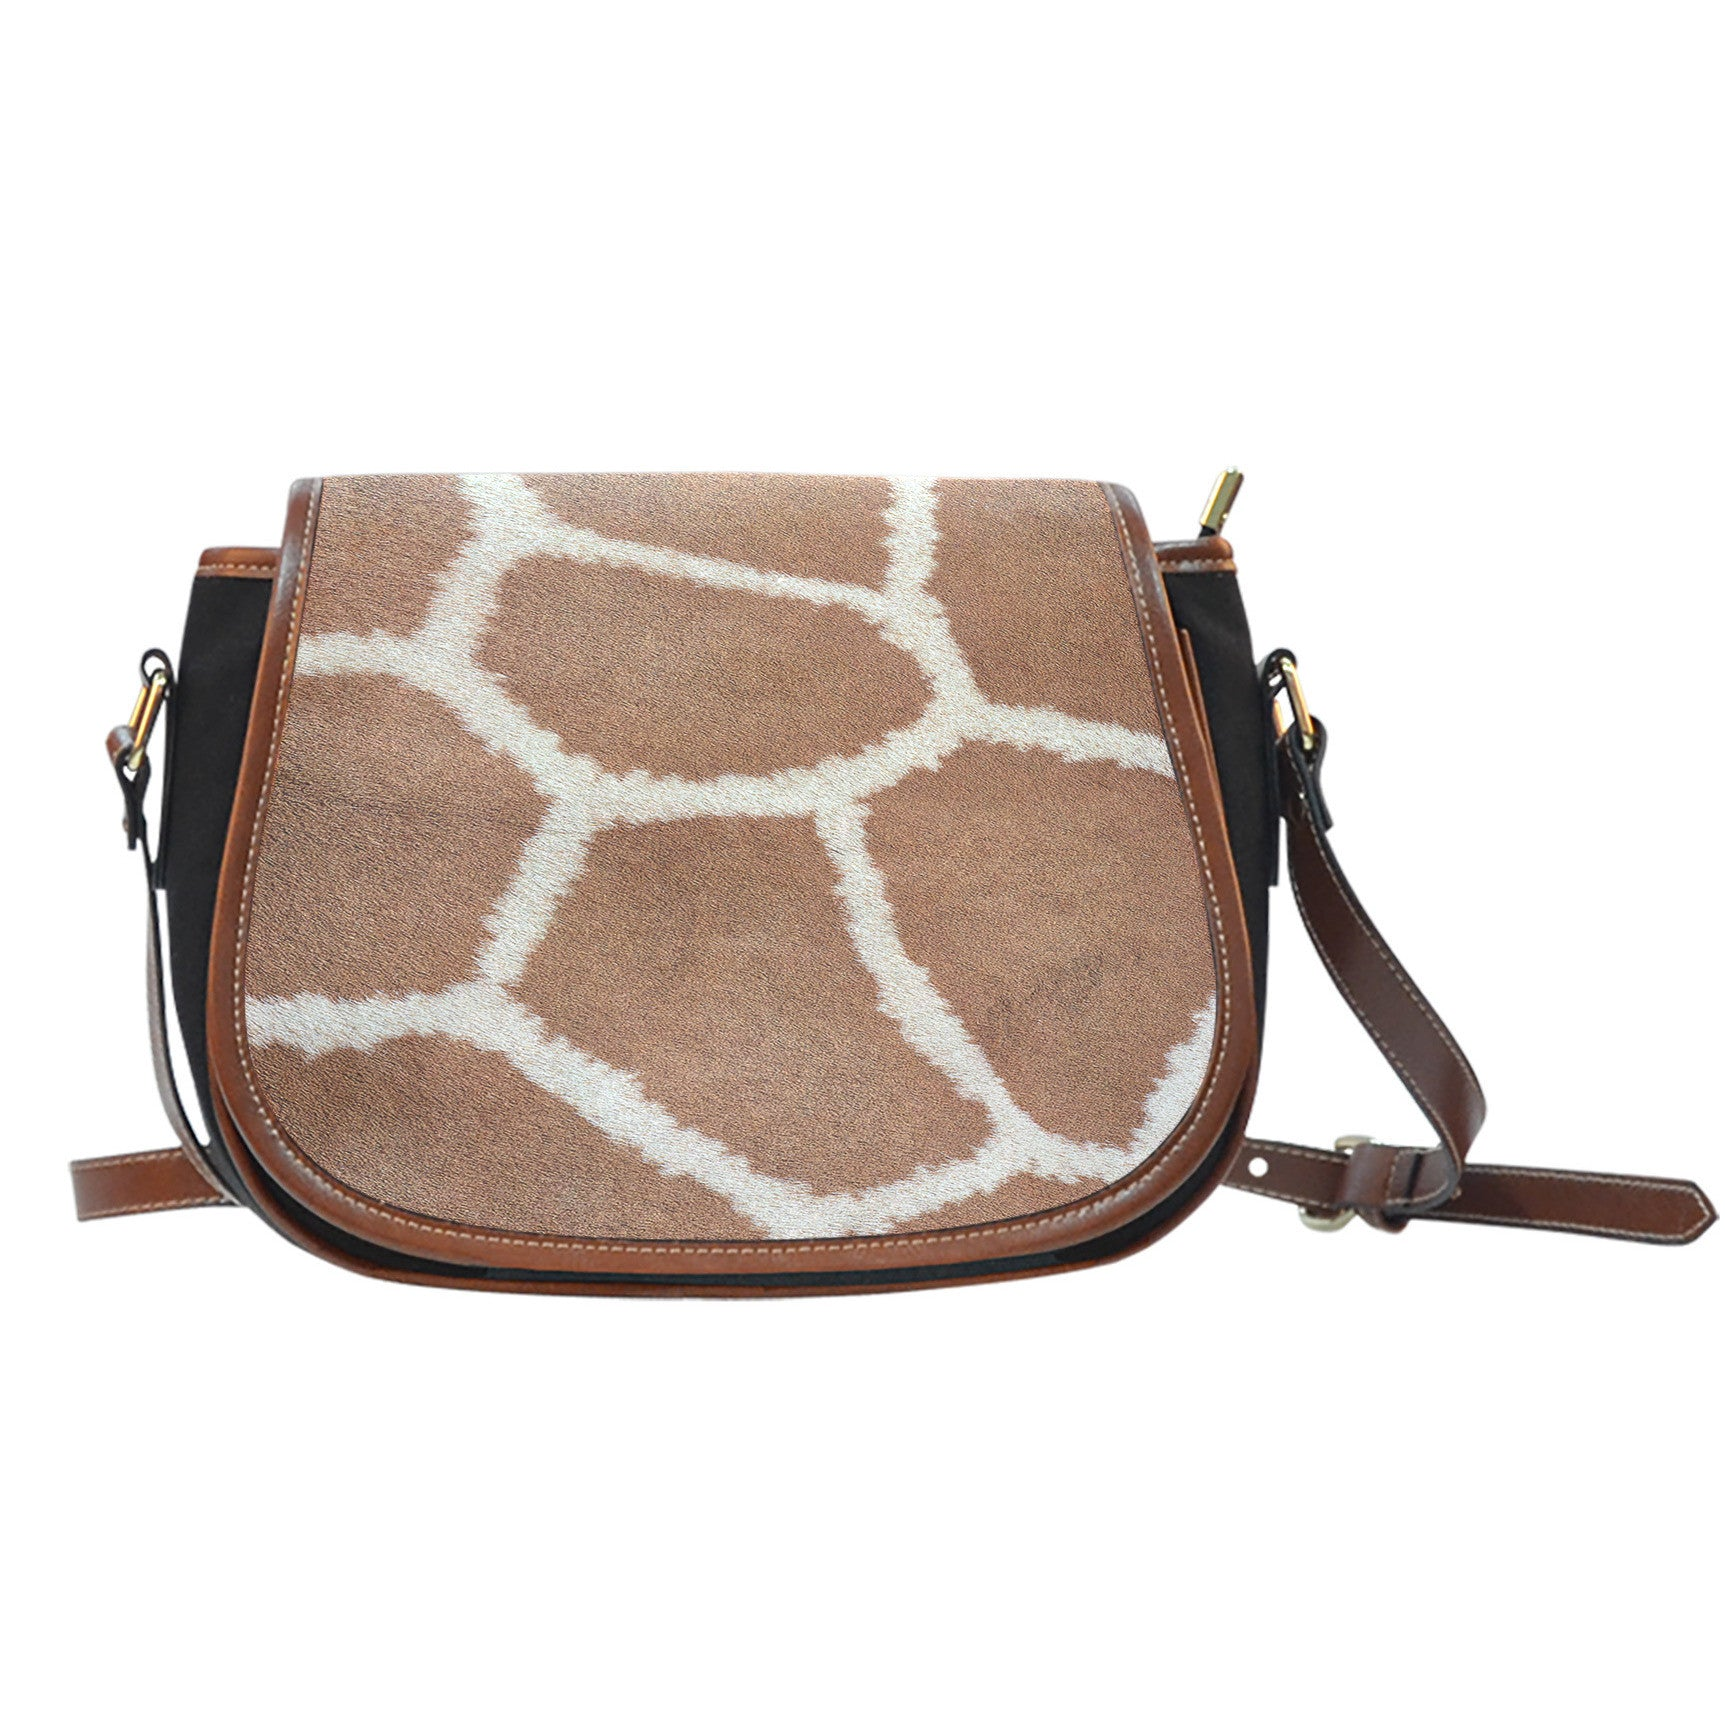 Giraffe Print Saddle Bag